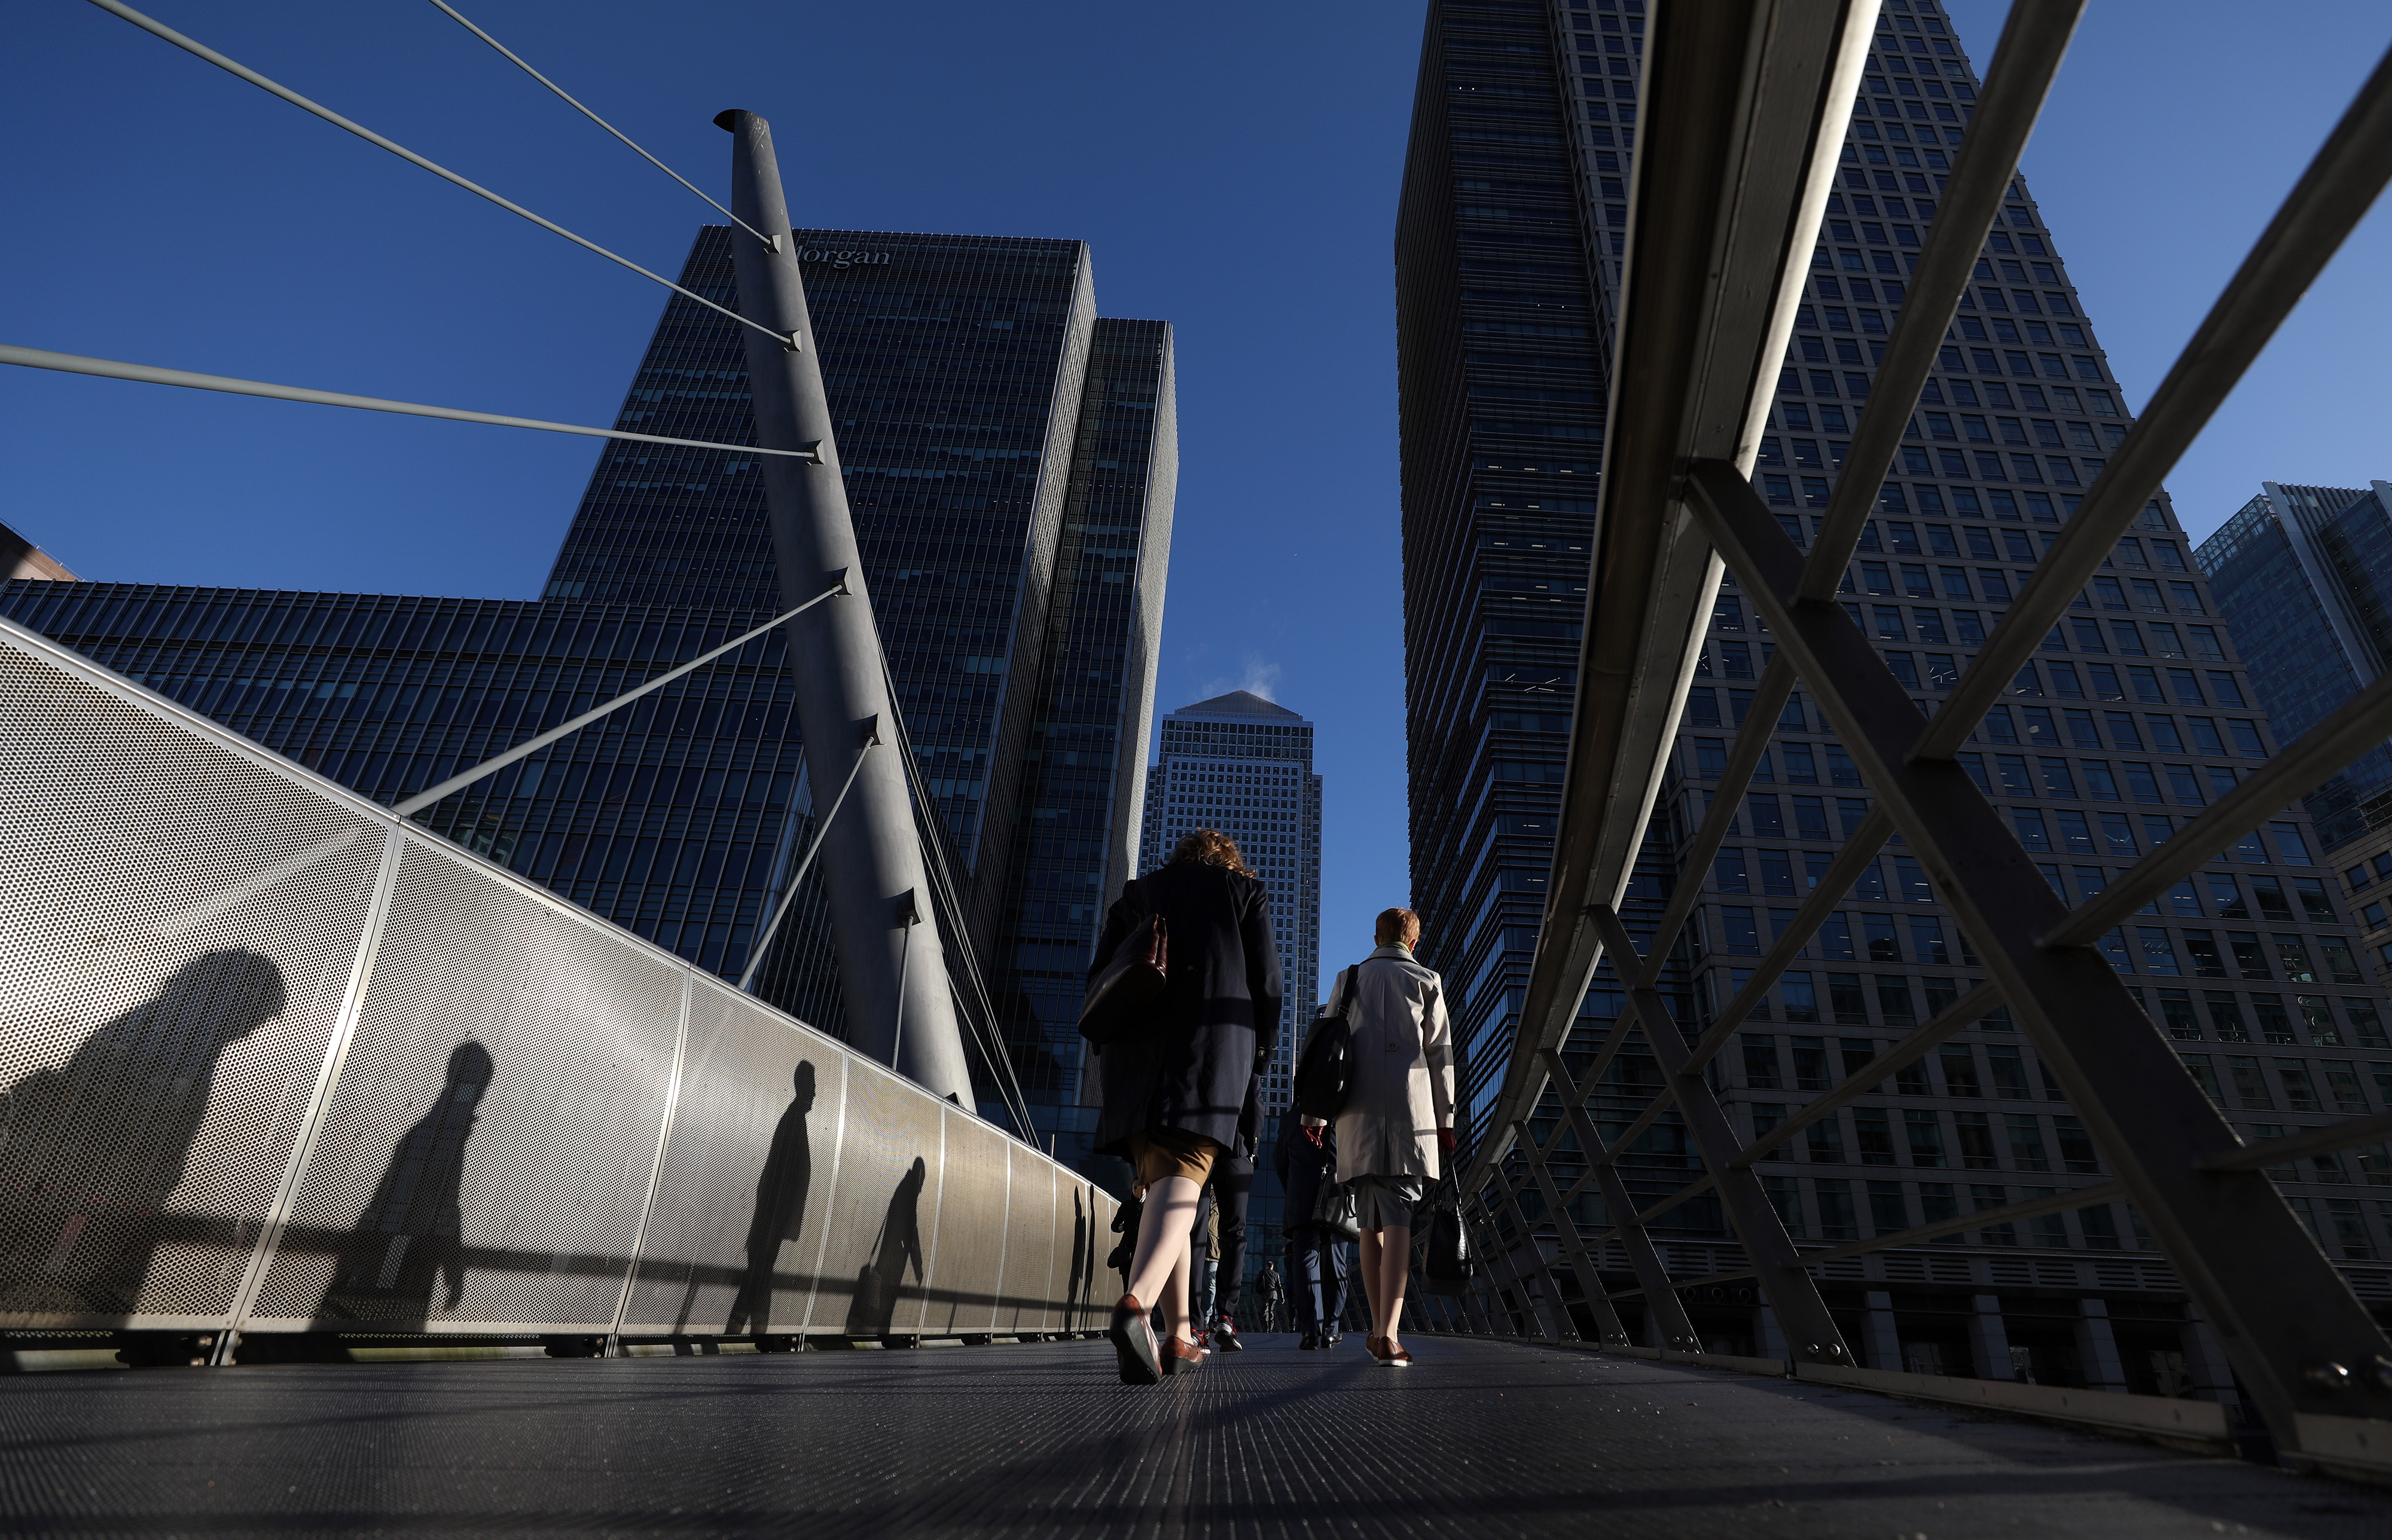 Views Of Financial District As HSBC Says Companies Already Re-Routing Business Due To Brexit